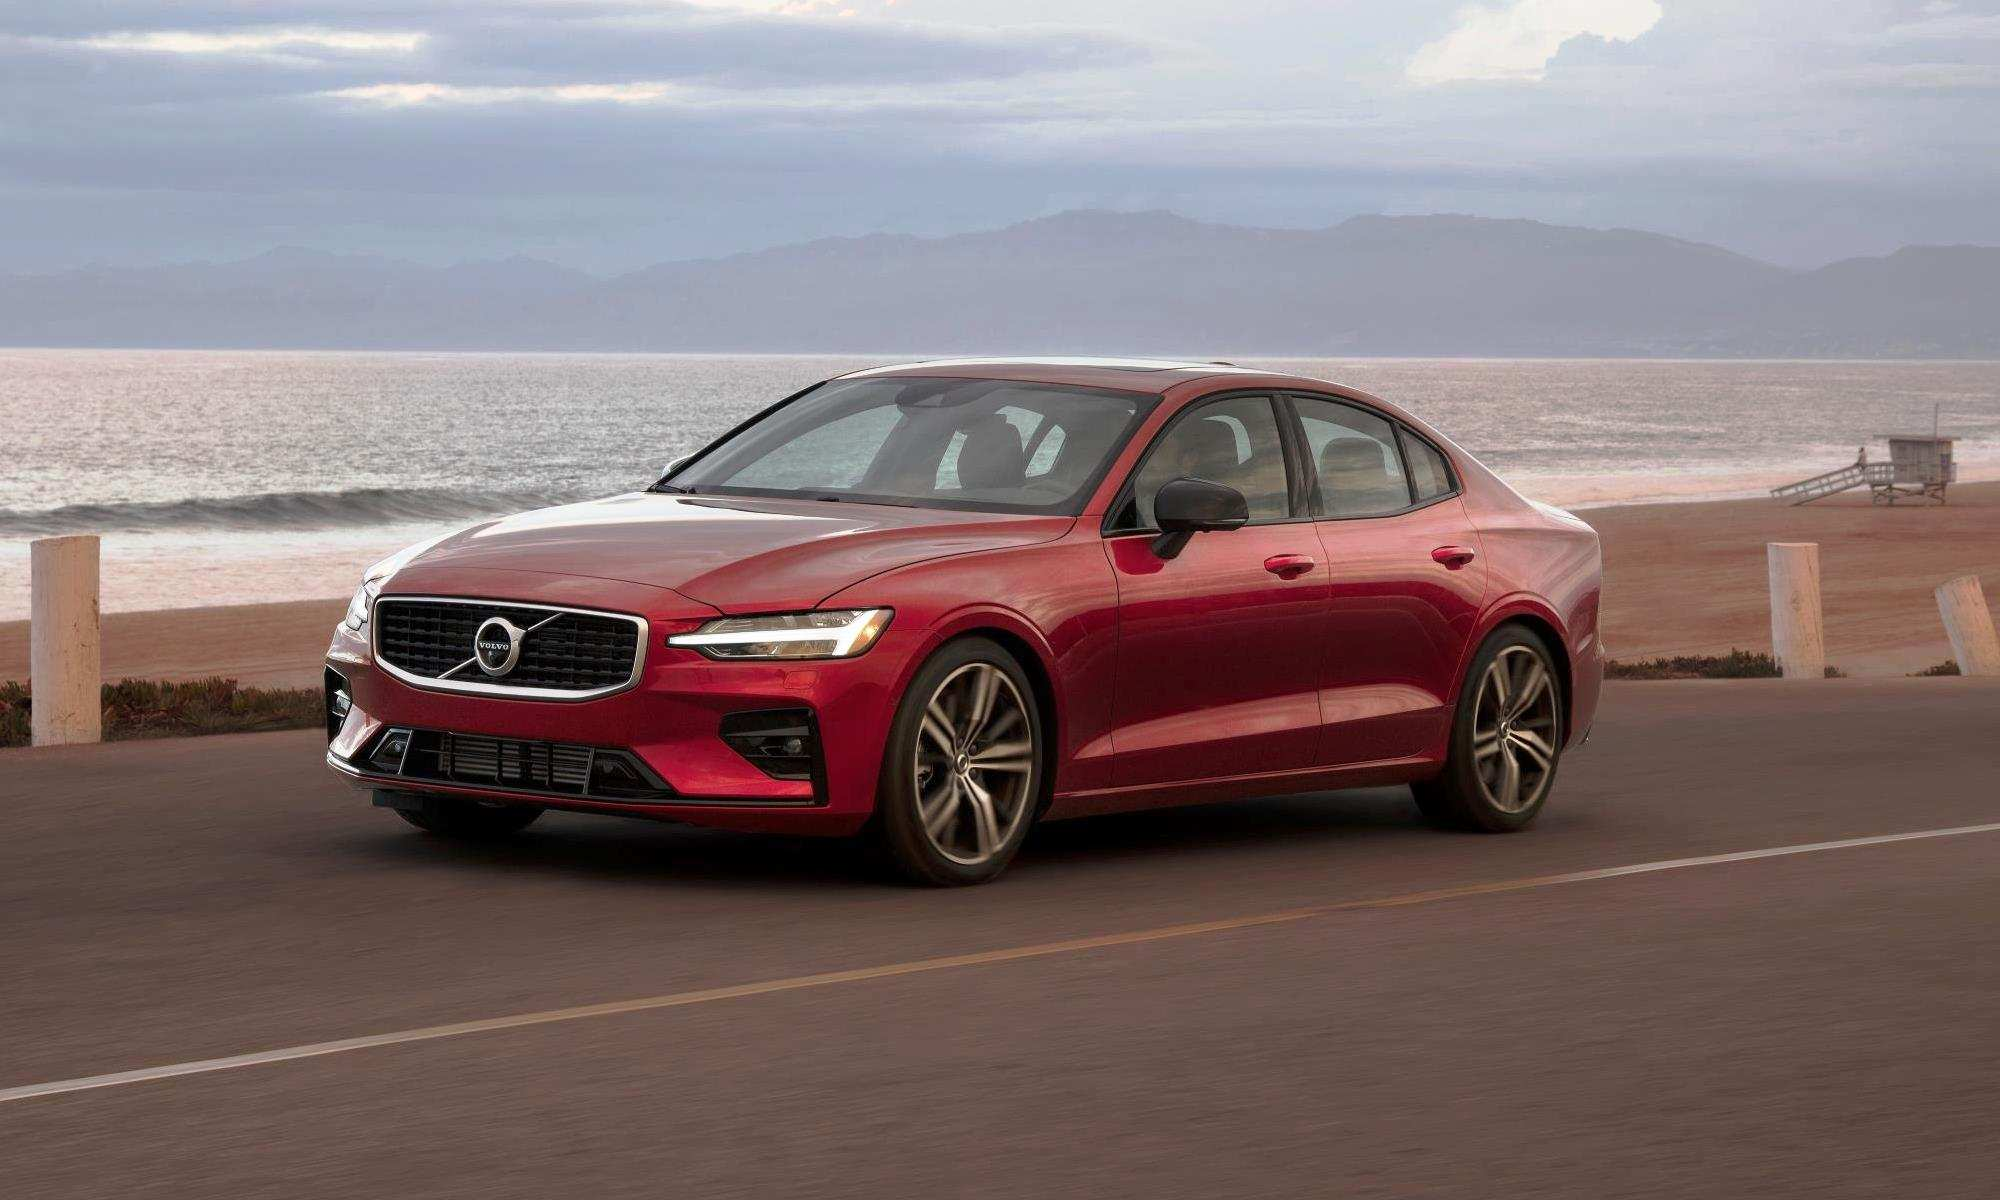 79 New Volvo Speed Limit 2020 Pictures with Volvo Speed Limit 2020